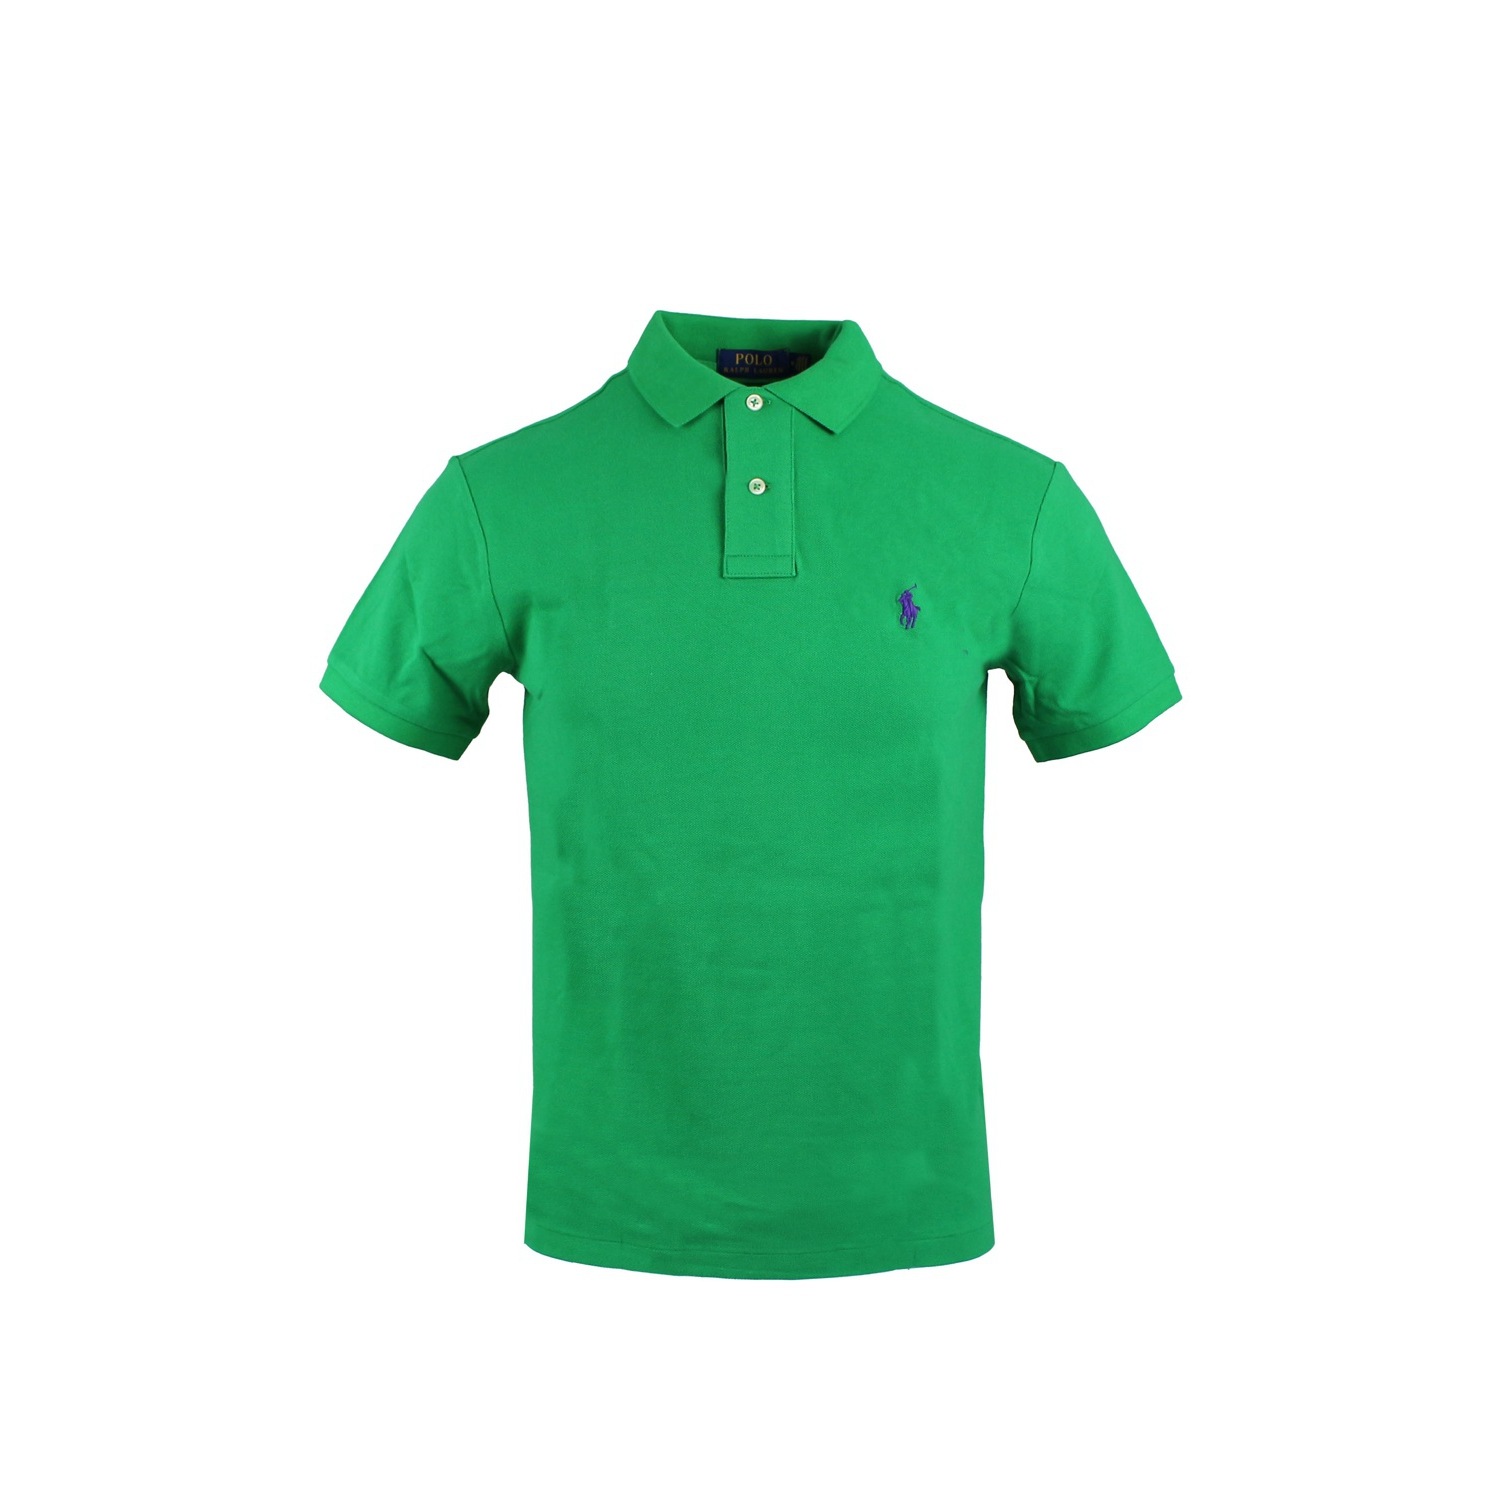 newest 72c76 cfd30 Slim Fit Poloshirt